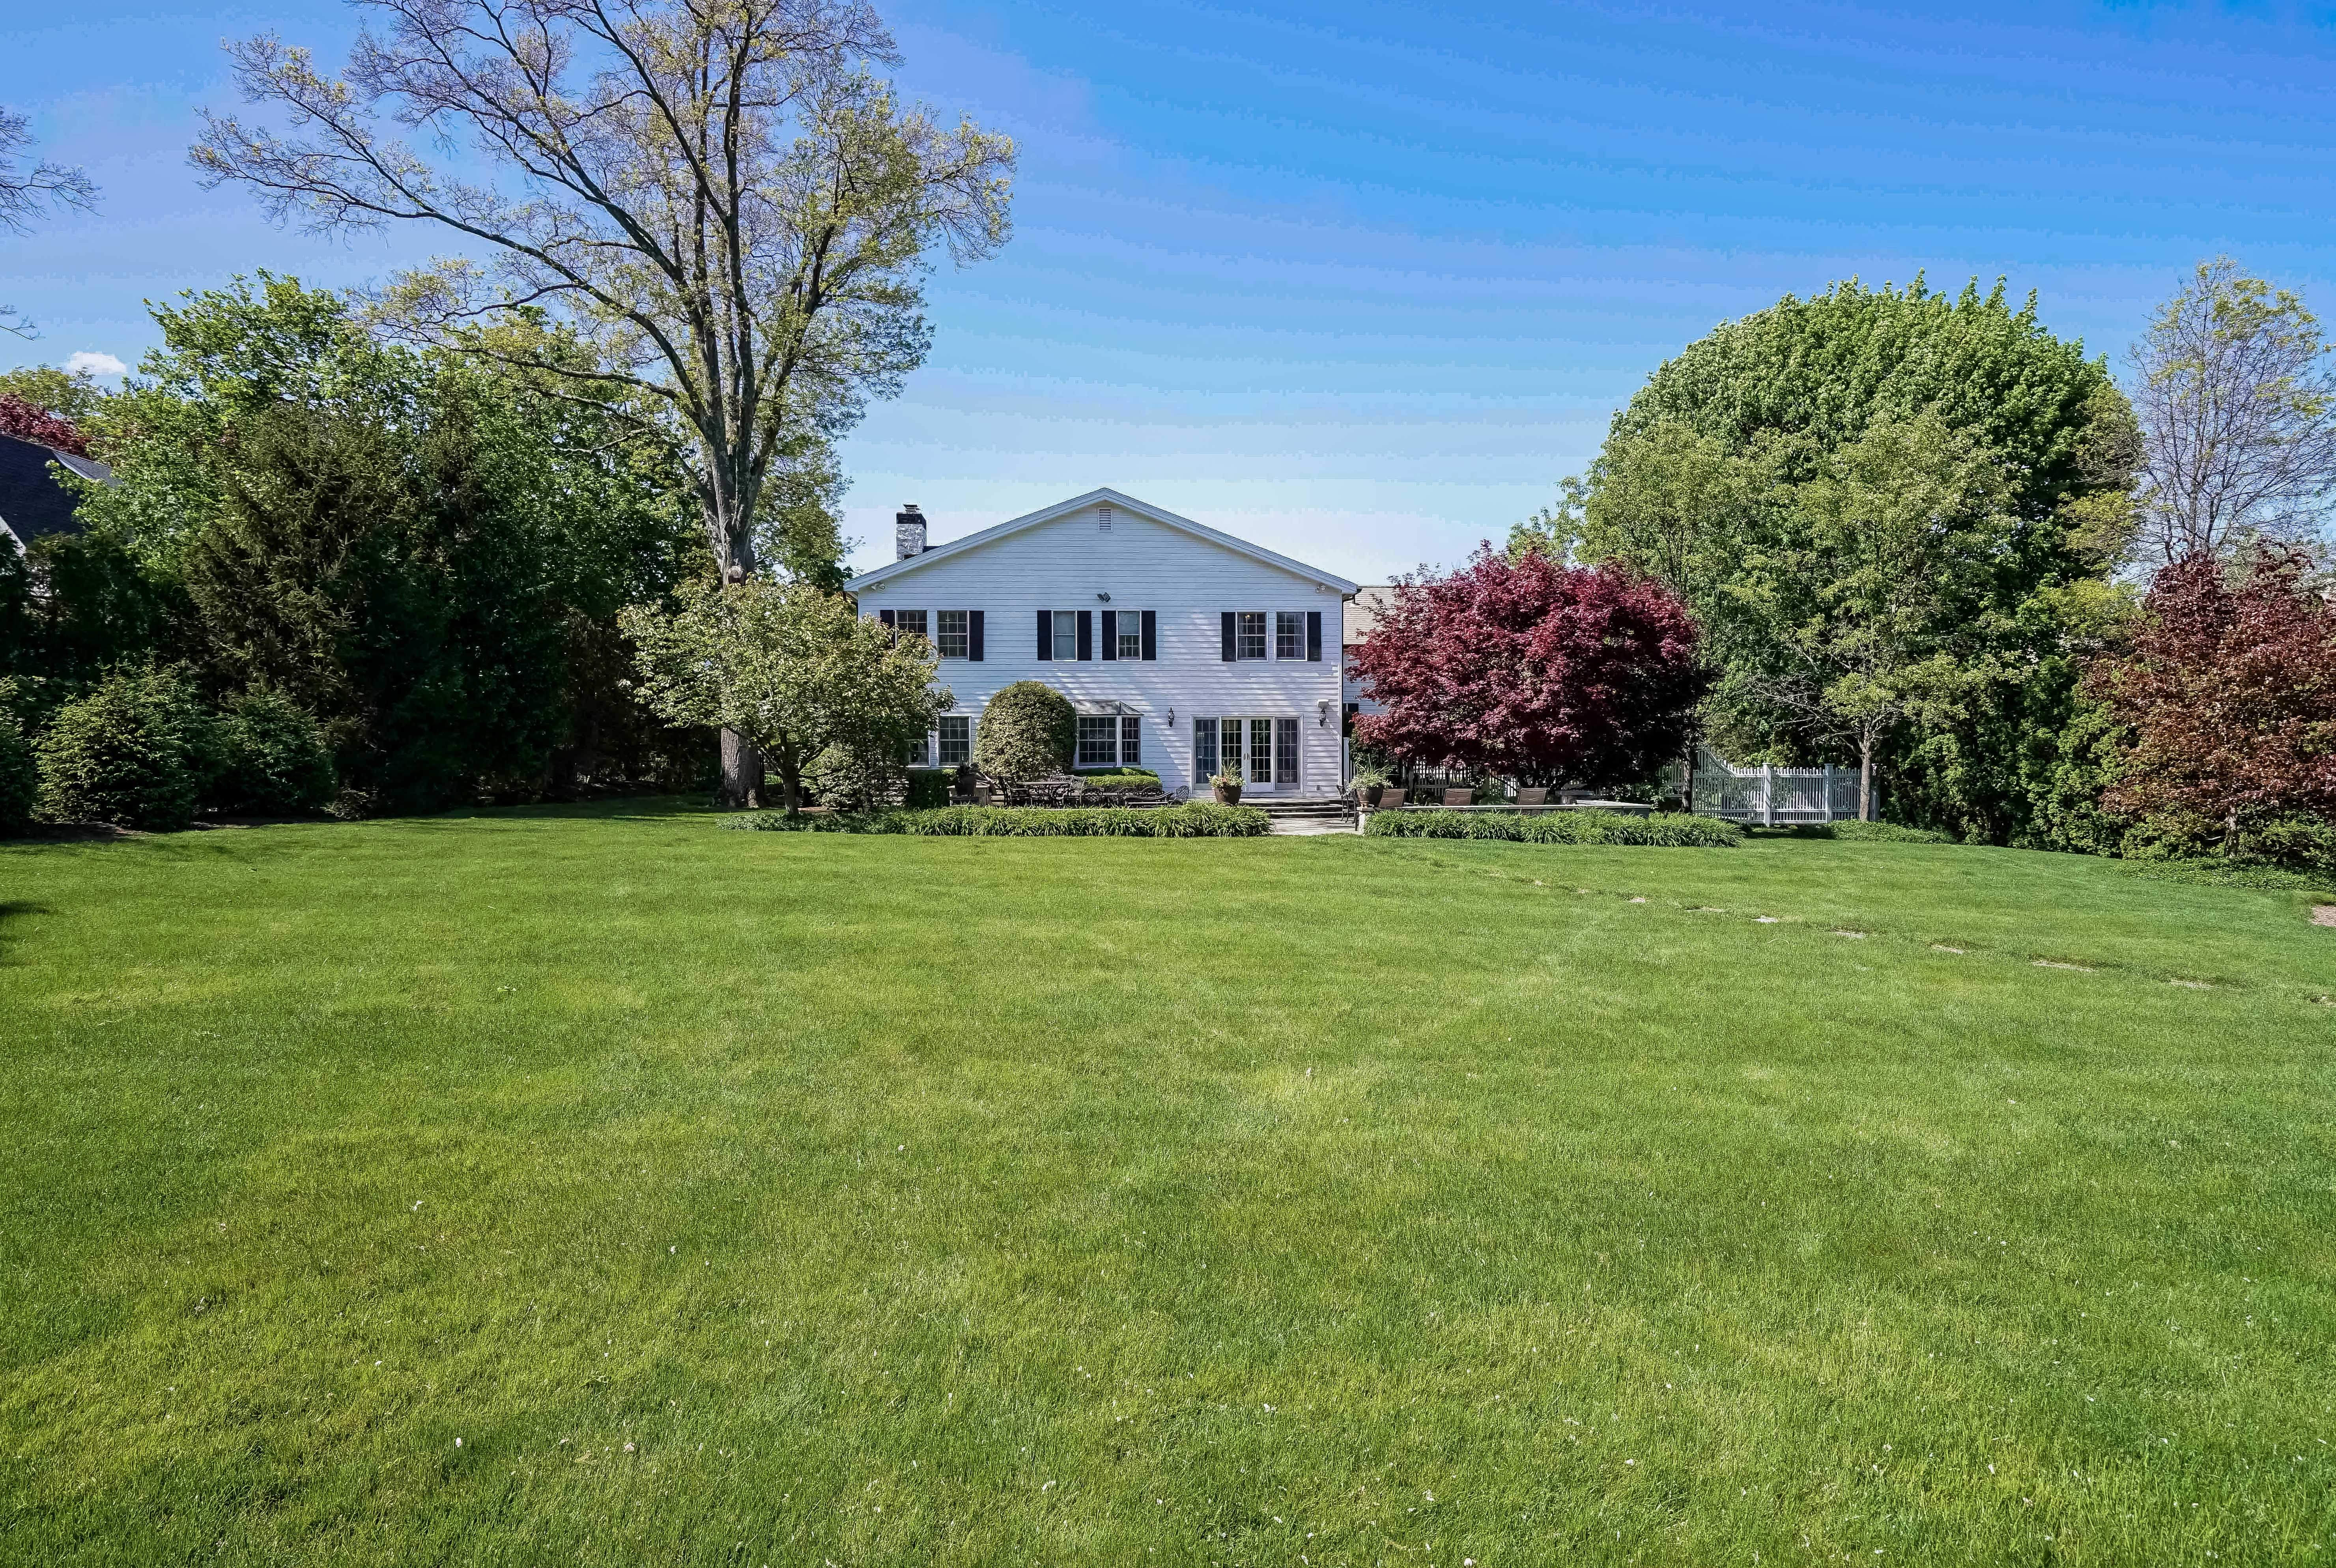 Single Family Home for Sale at Beautiful Colonial 9 Bradford Road Scarsdale, New York, 10583 United States